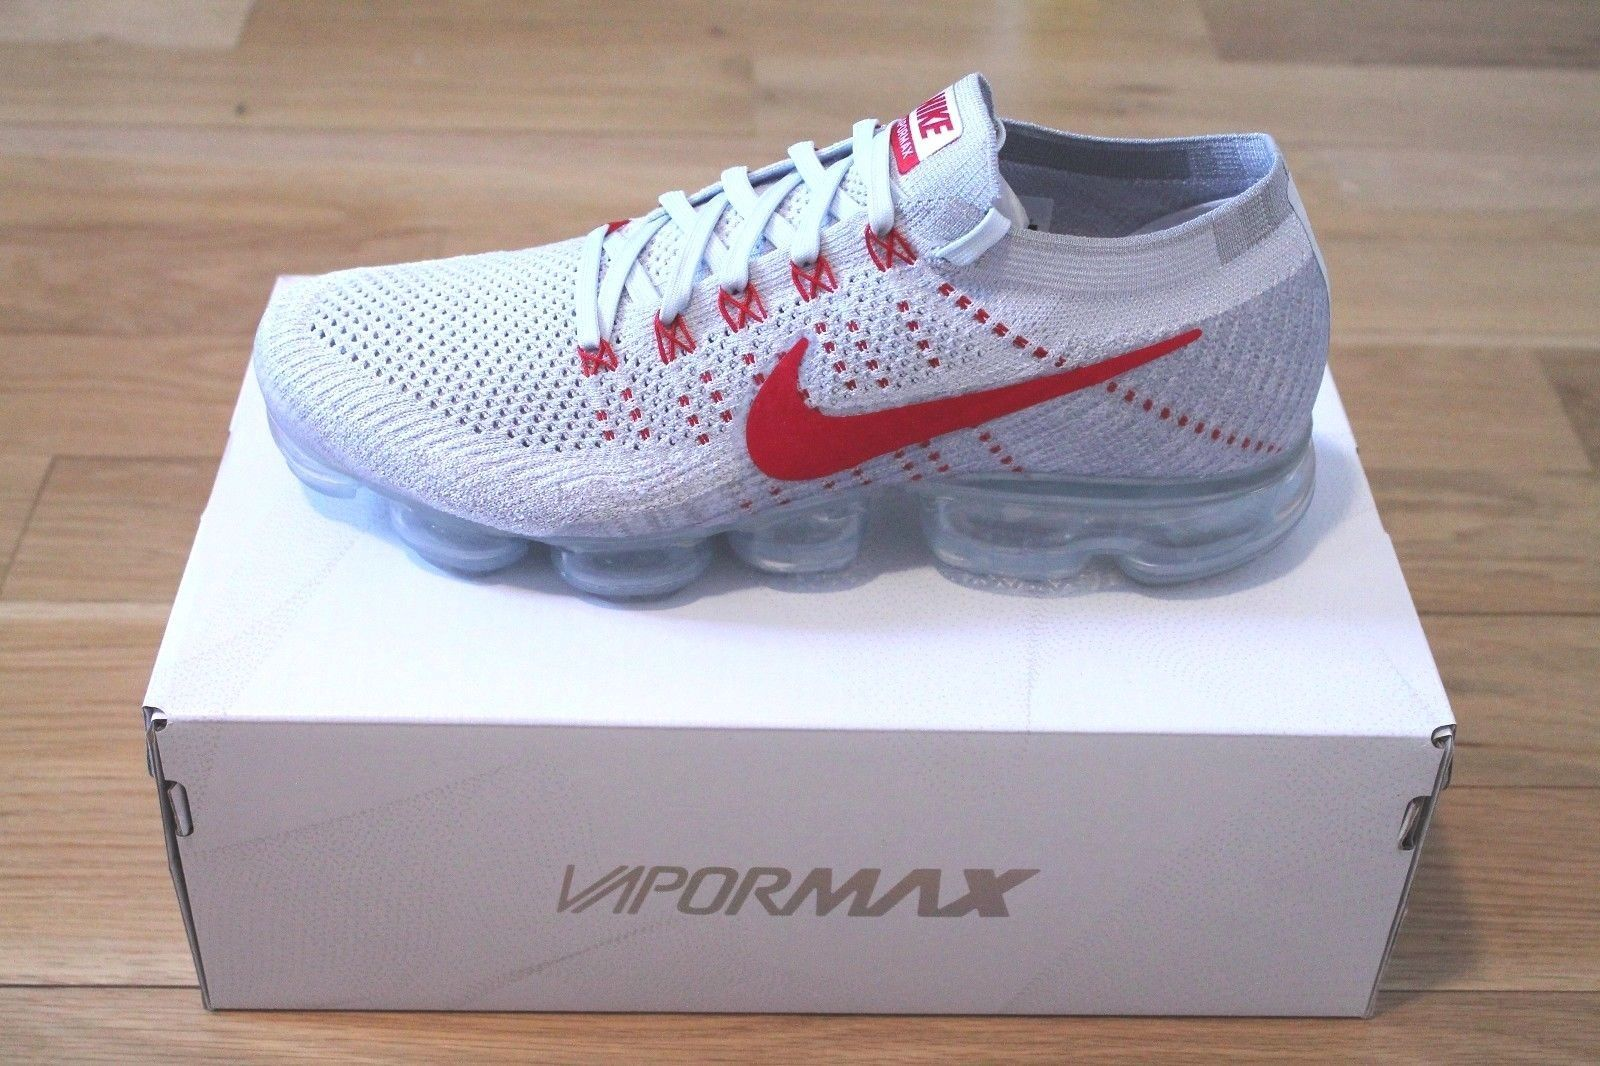 Nike Air VaporMax Flyknit 'Pure Platinum/University Red' - EU Kicks: Sneaker